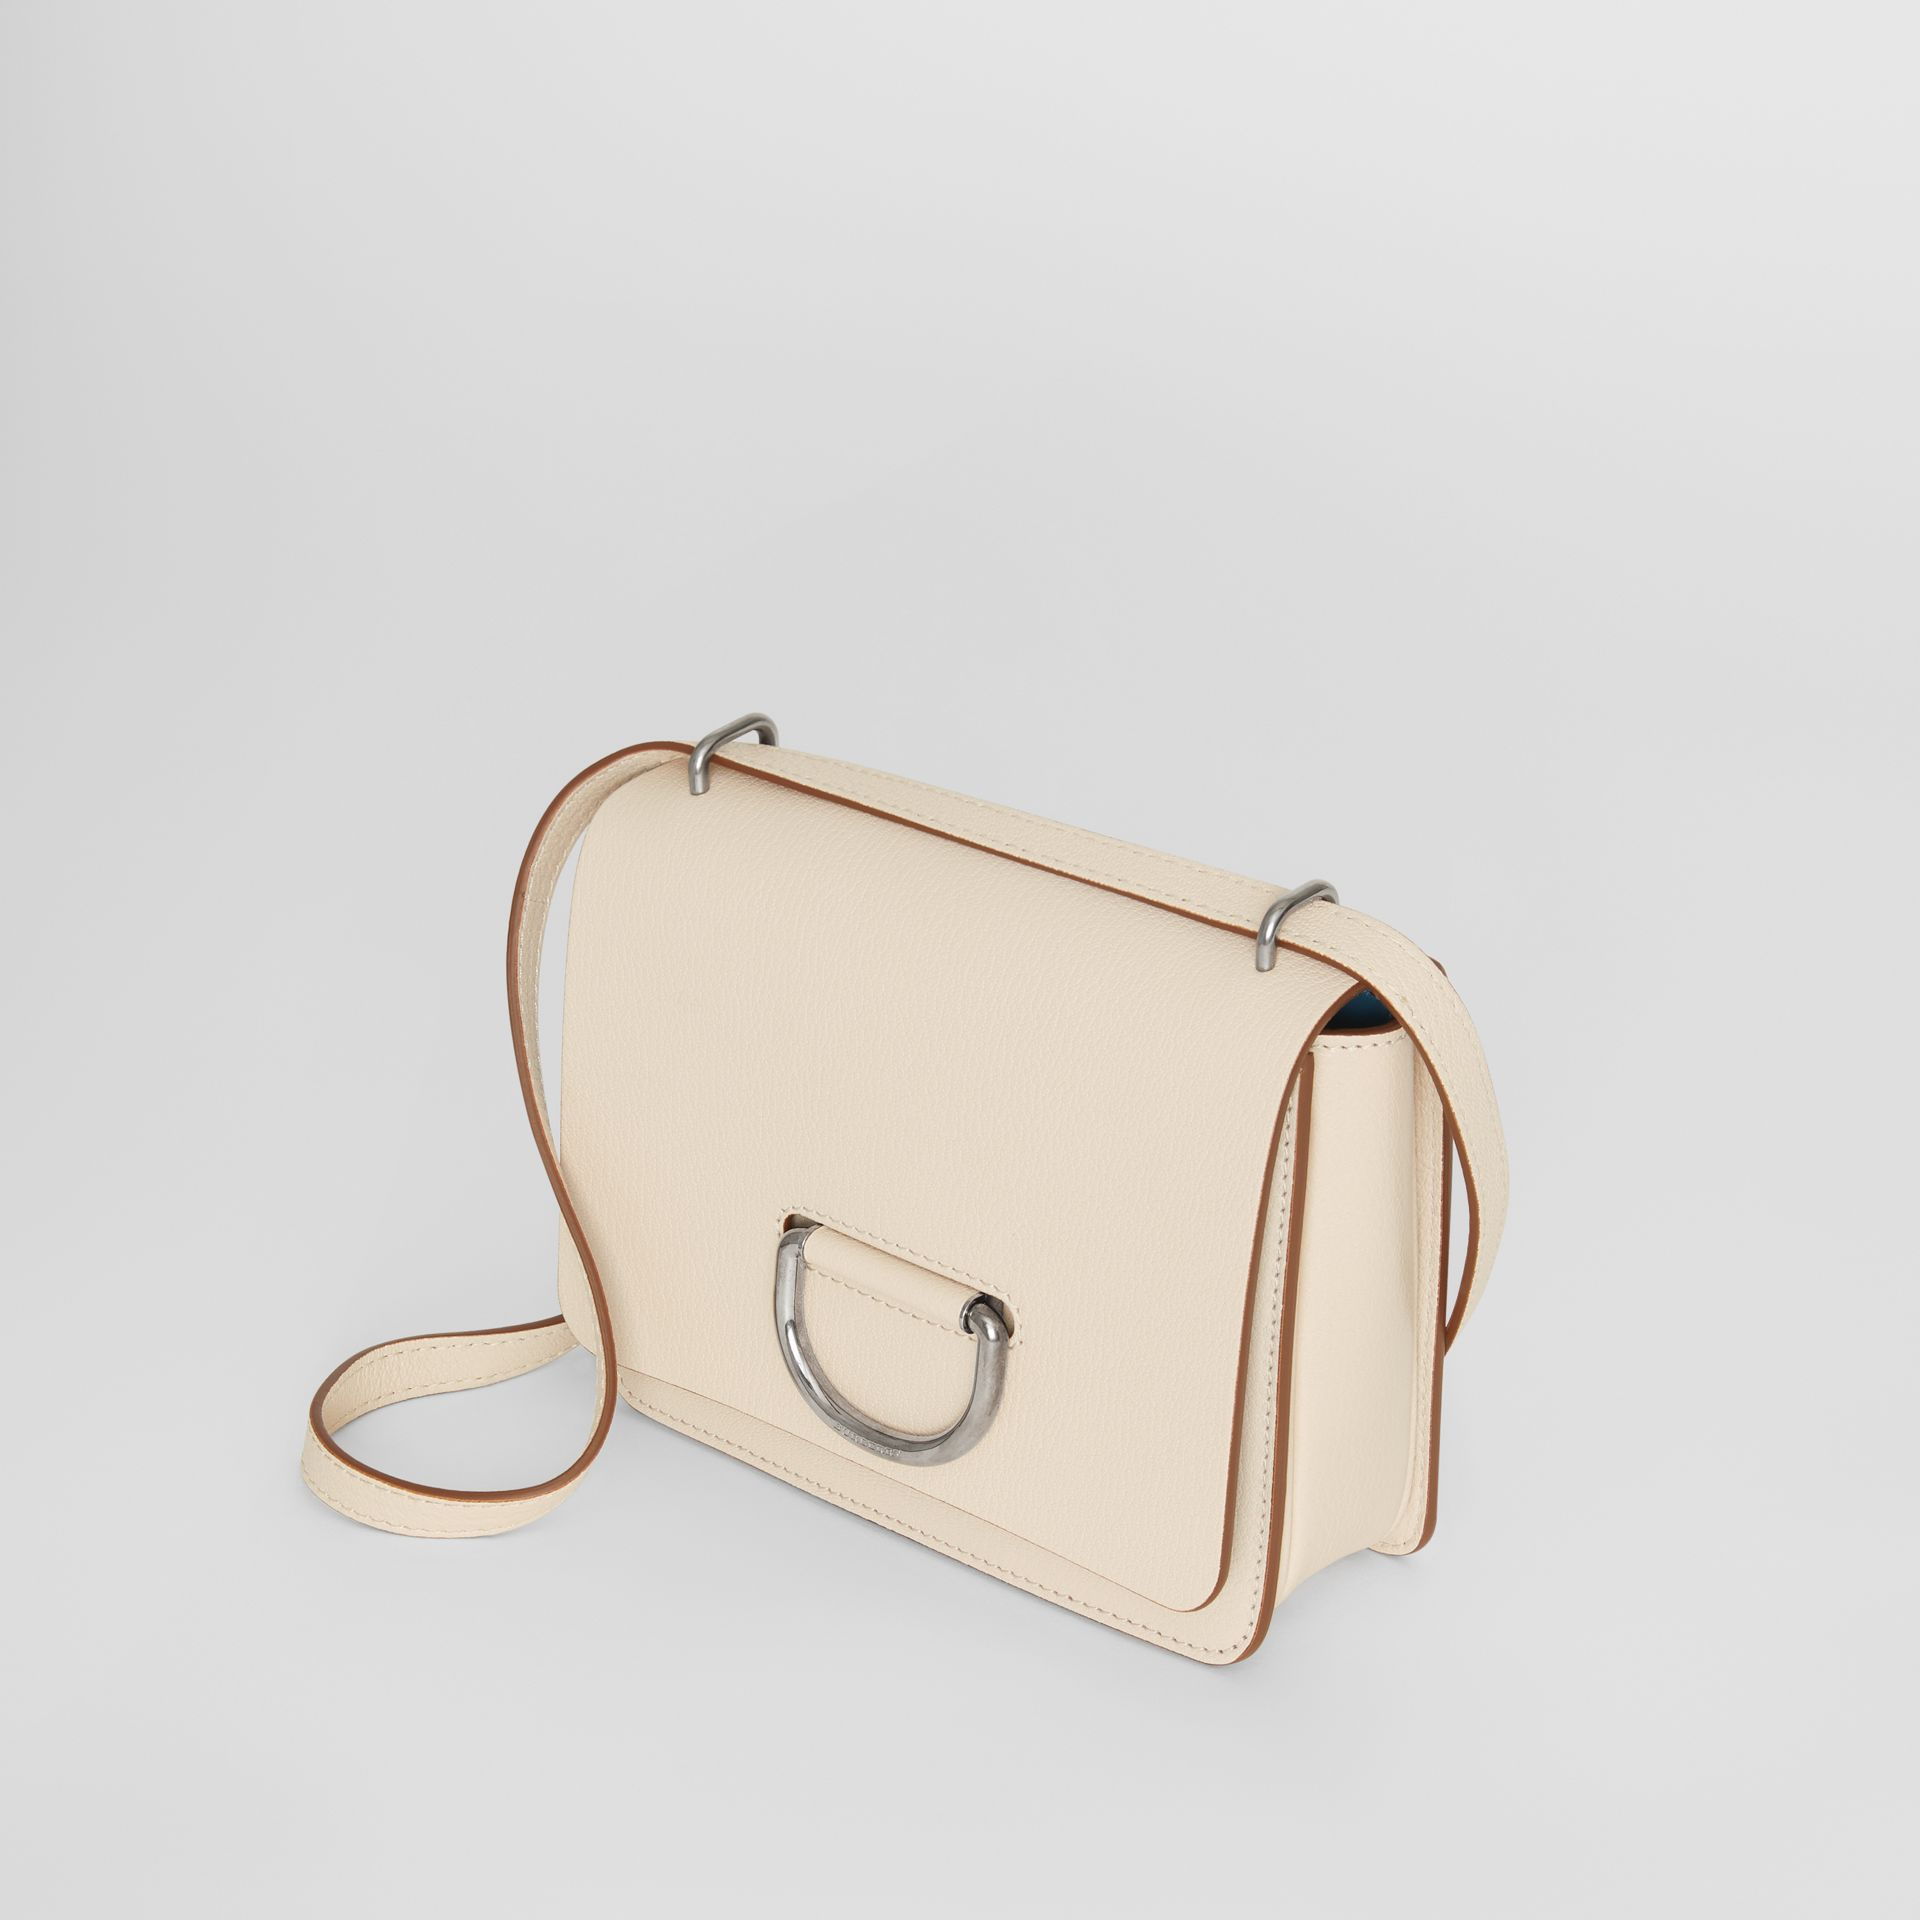 Petit sac The D-ring en cuir (Stone) - Femme | Burberry Canada - photo de la galerie 4